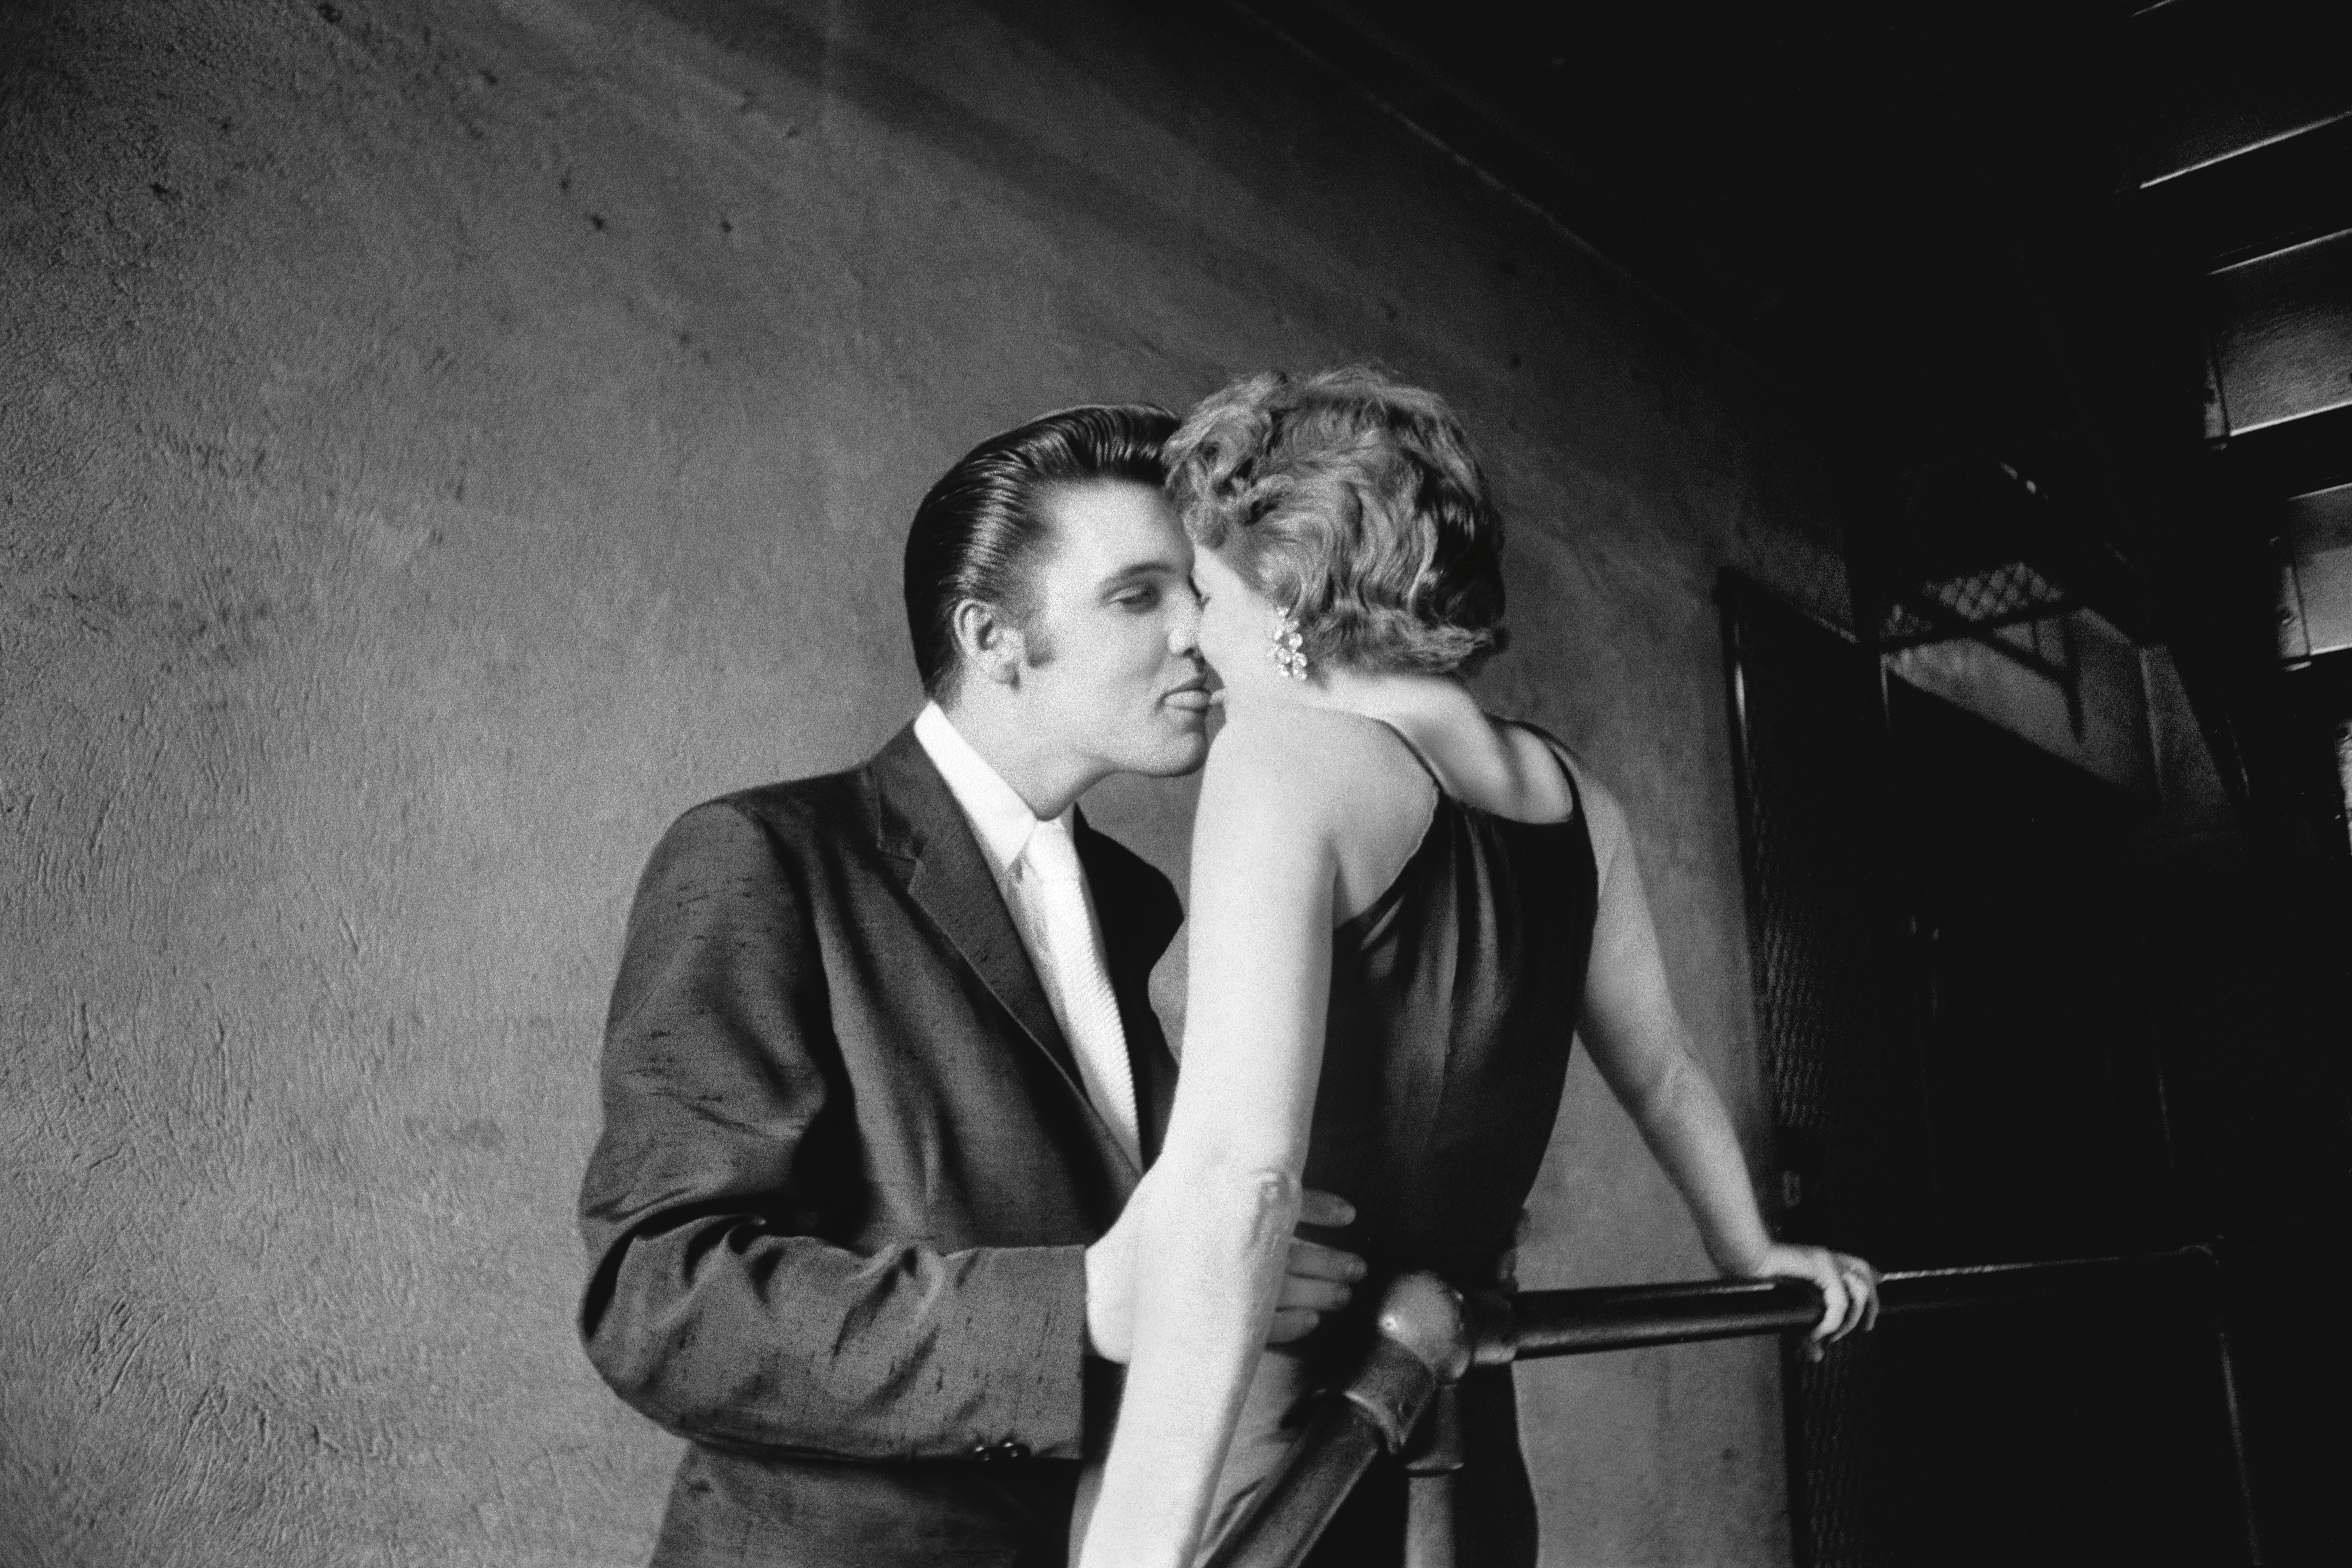 This June 30, 1956 photo provided by courtesy of Taschen shows, 'The Kiss,' at the Mosque Theater in Richmond, Va. The image